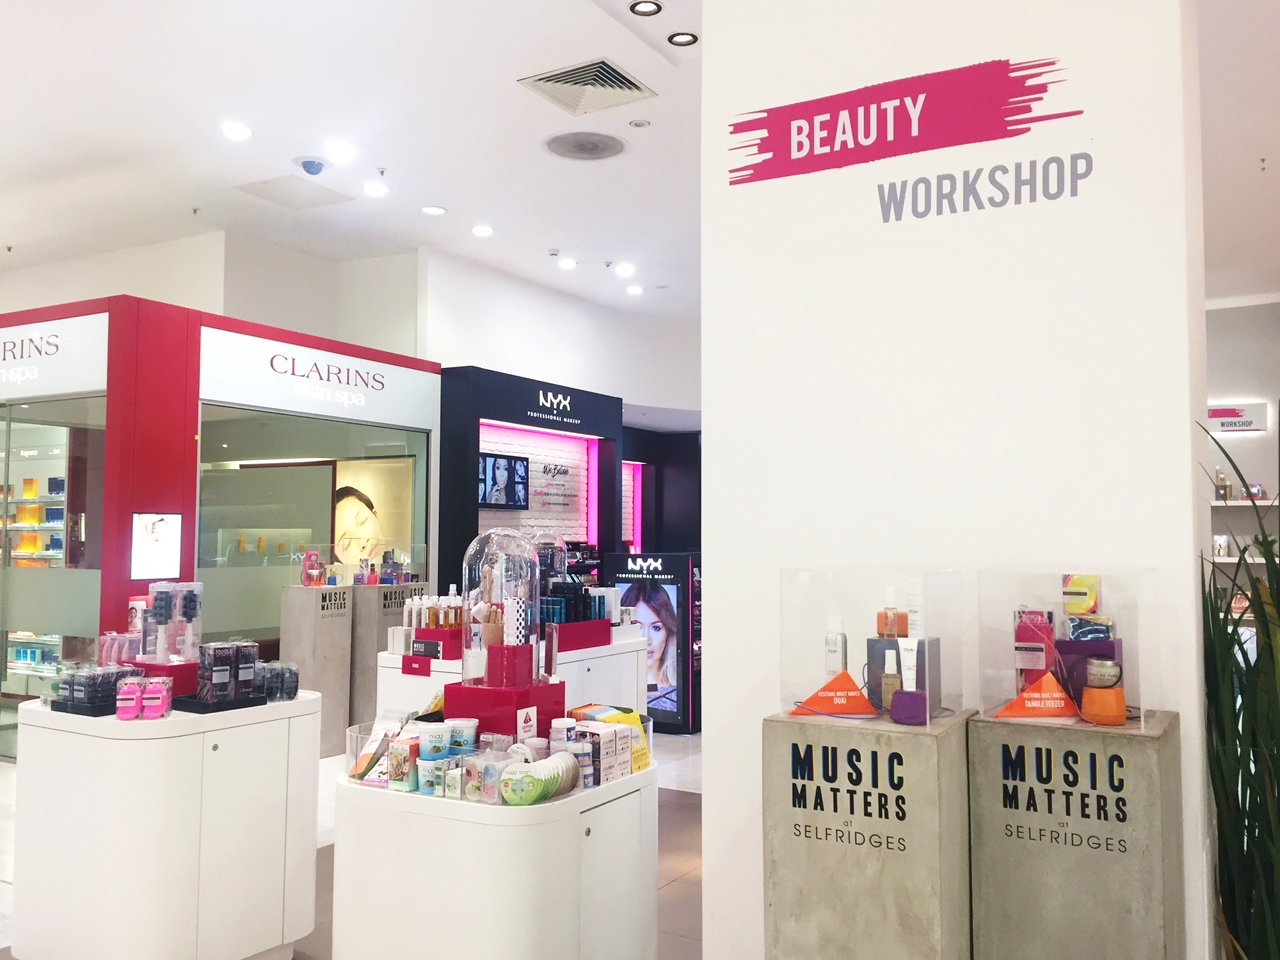 Selfridges Beauty Workshop opens at Trafford Centre